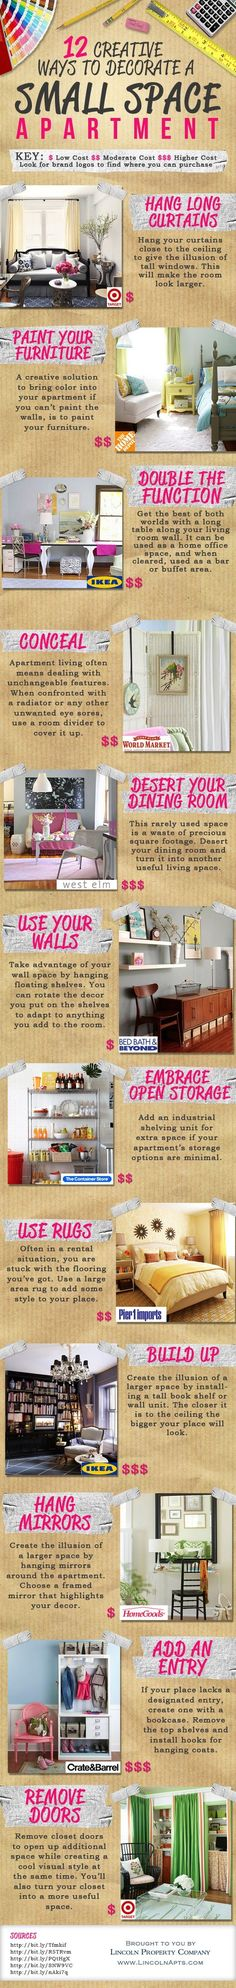 Small space tips